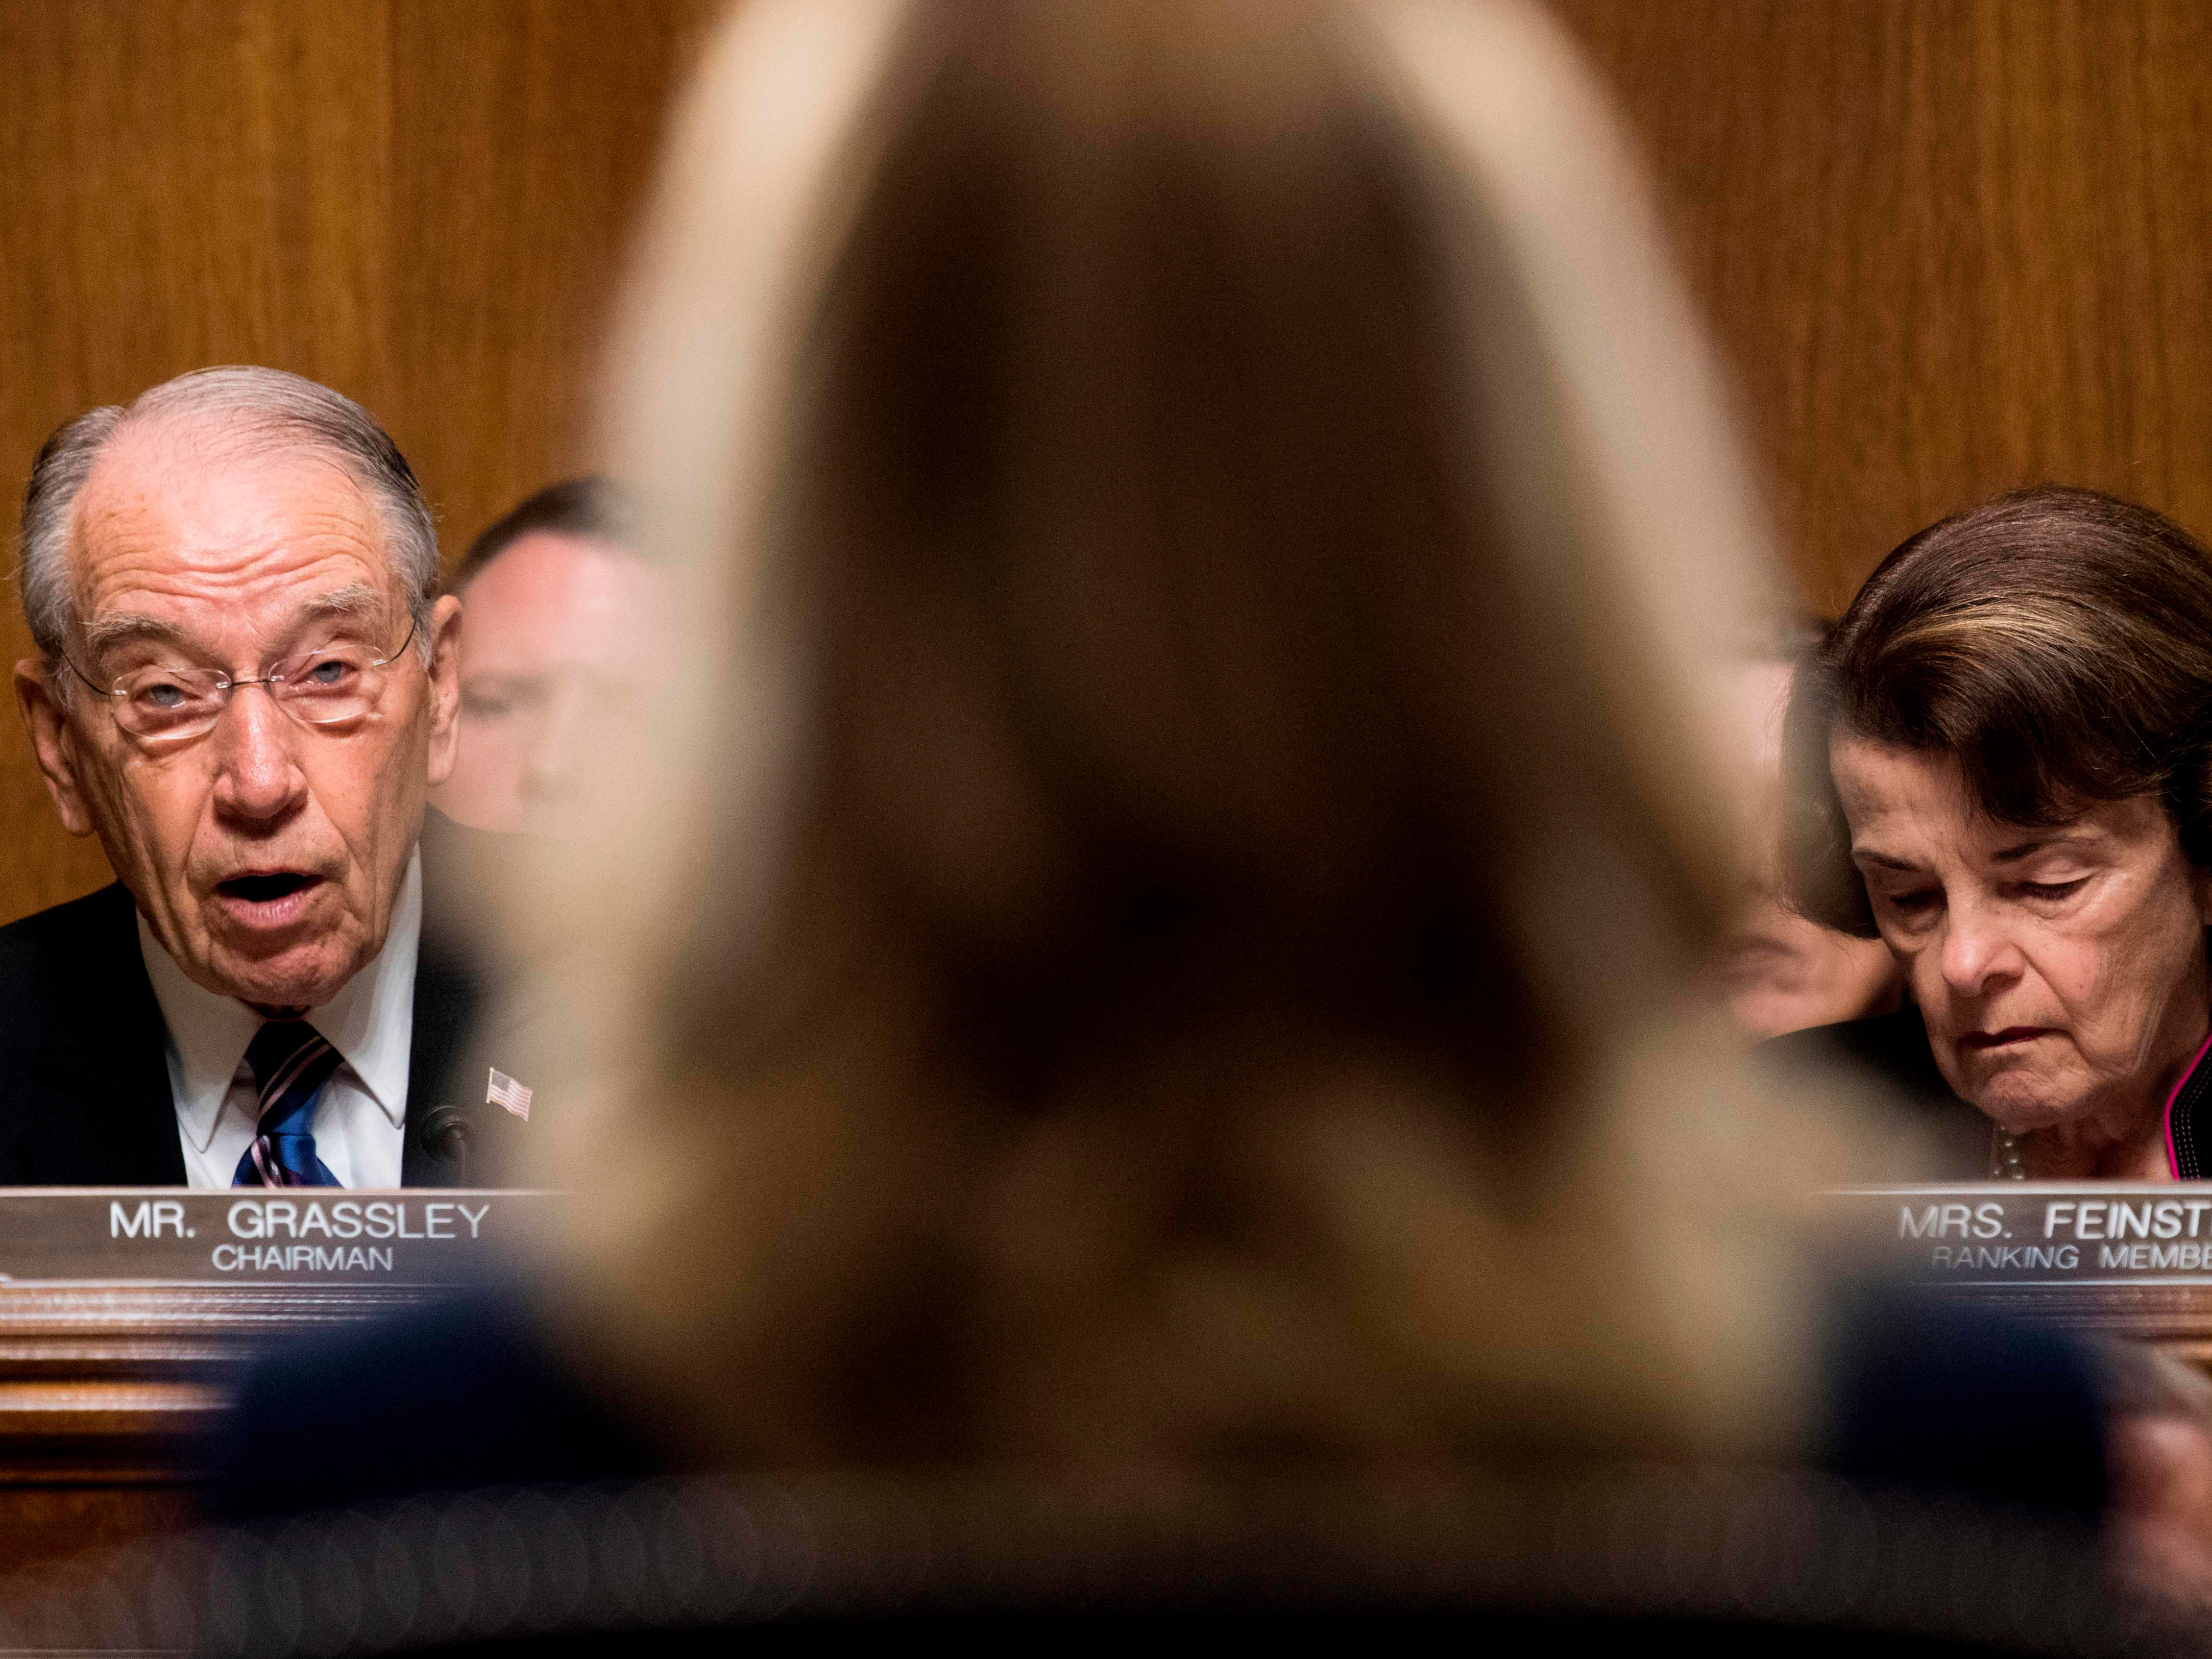 Senate Judiciary Committee chairman Charles Grassley (L), with Senator Dianne Feinstein (R), gives a preliminary statement before Christine Blasey Ford (C), the woman accusing Supreme Court nominee Brett Kavanaugh of sexually assaulting her at a party 36 years ago, testifies on Capitol Hill in Washington, DC, September 27, 2018. (Photo by Tom Williams / POOL / AFP)TOM WILLIAMS/AFP/Getty Images ORIG FILE ID: AFP_19I48A